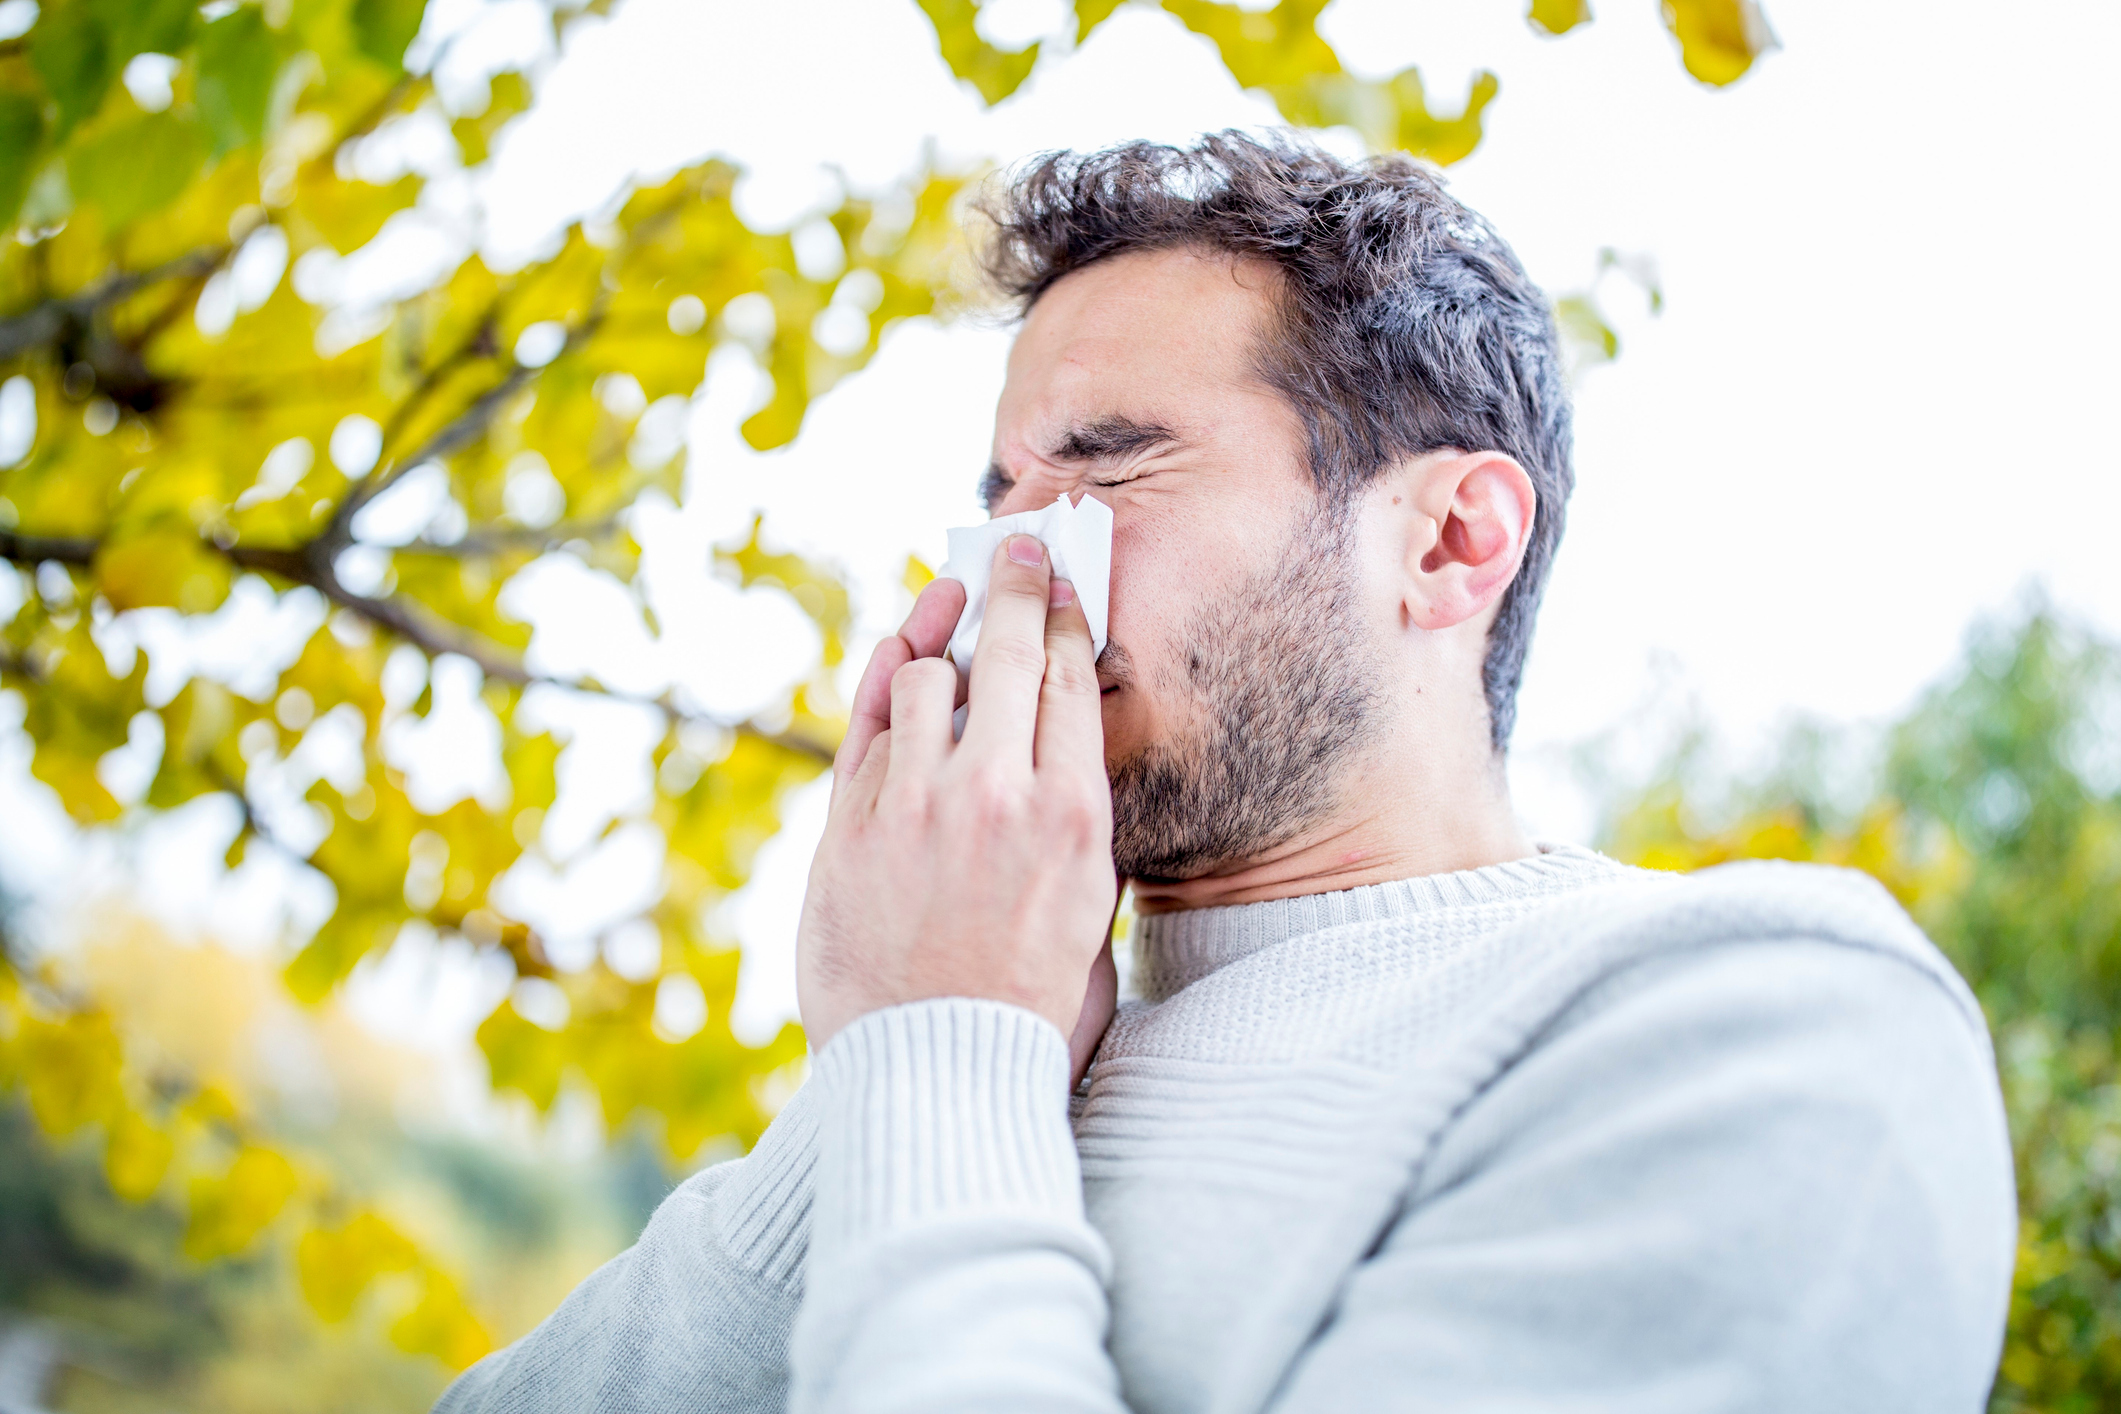 There are plenty of ways to ease the symptoms of hay fever